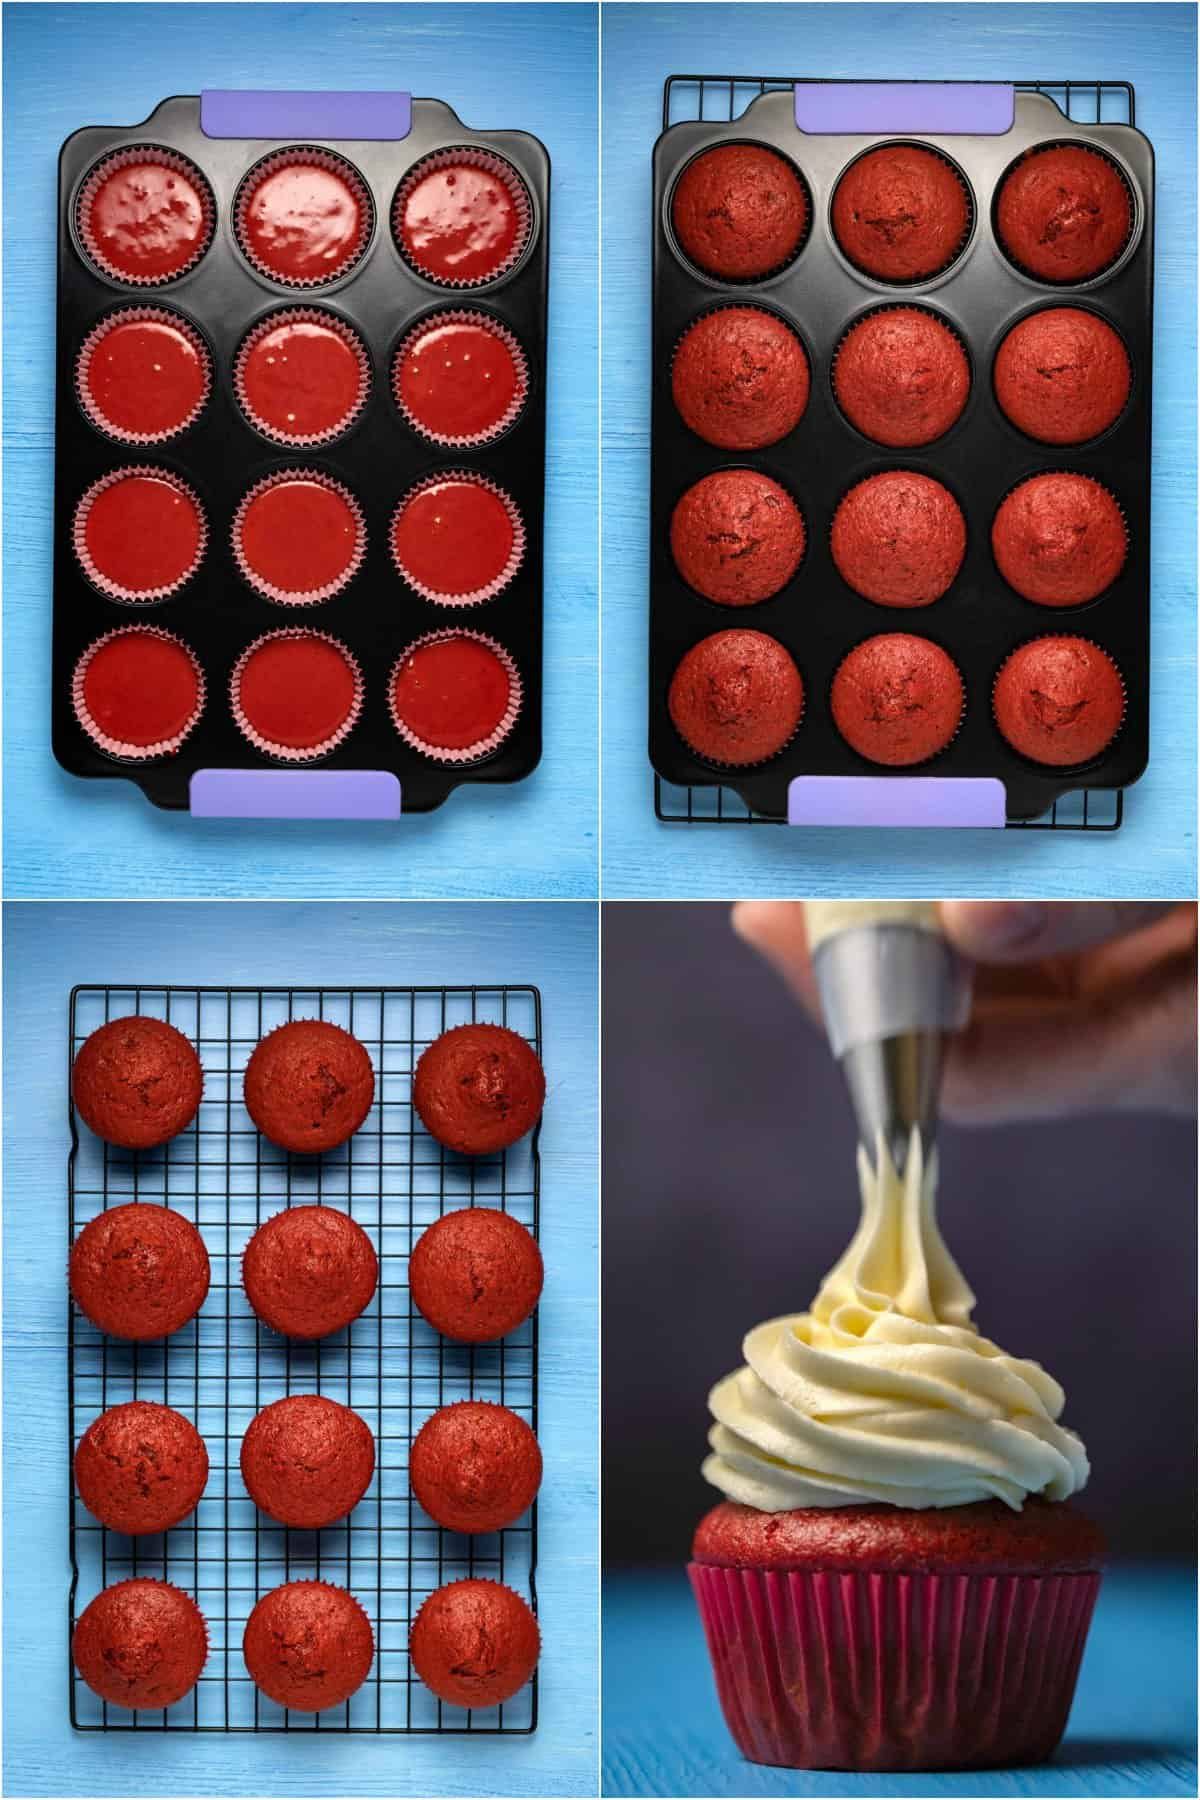 Step by step process photo collage of making red velvet cupcakes.